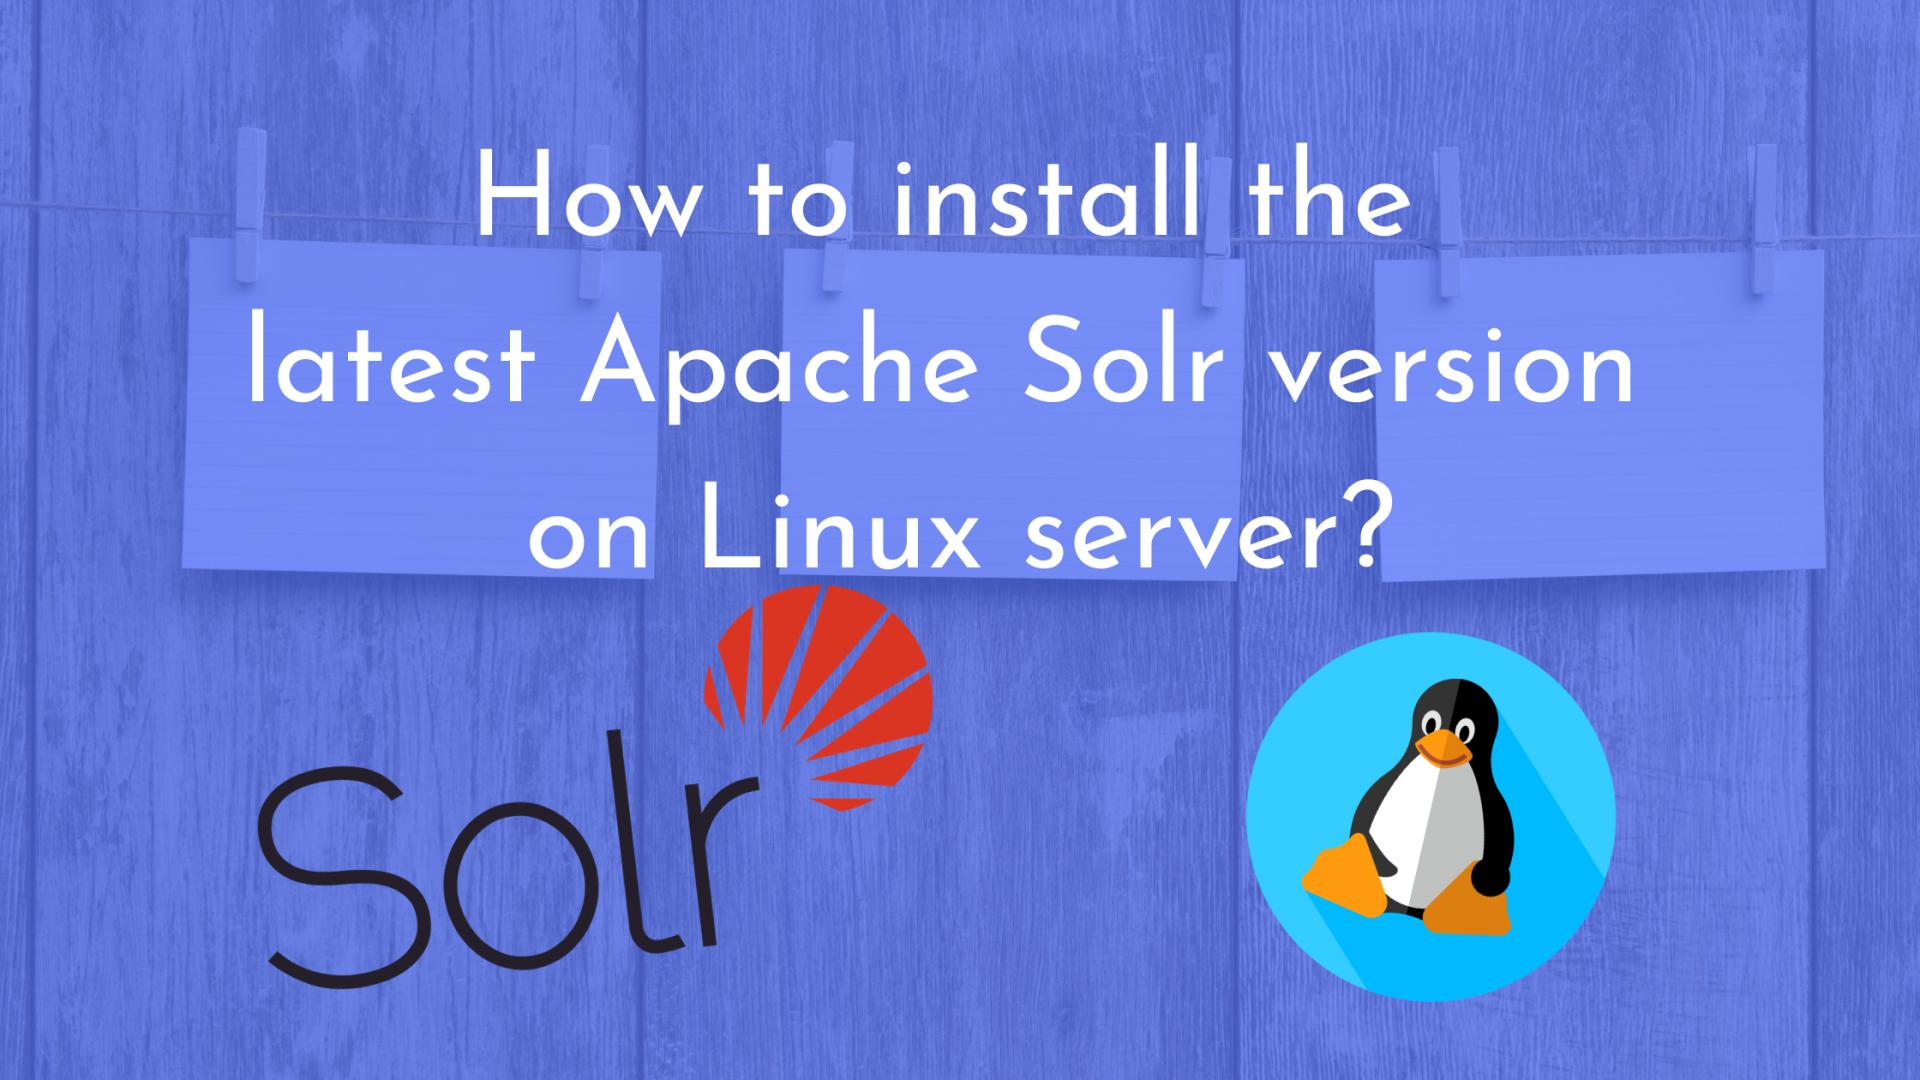 How to install the latest Apache Solr version on Linux server?